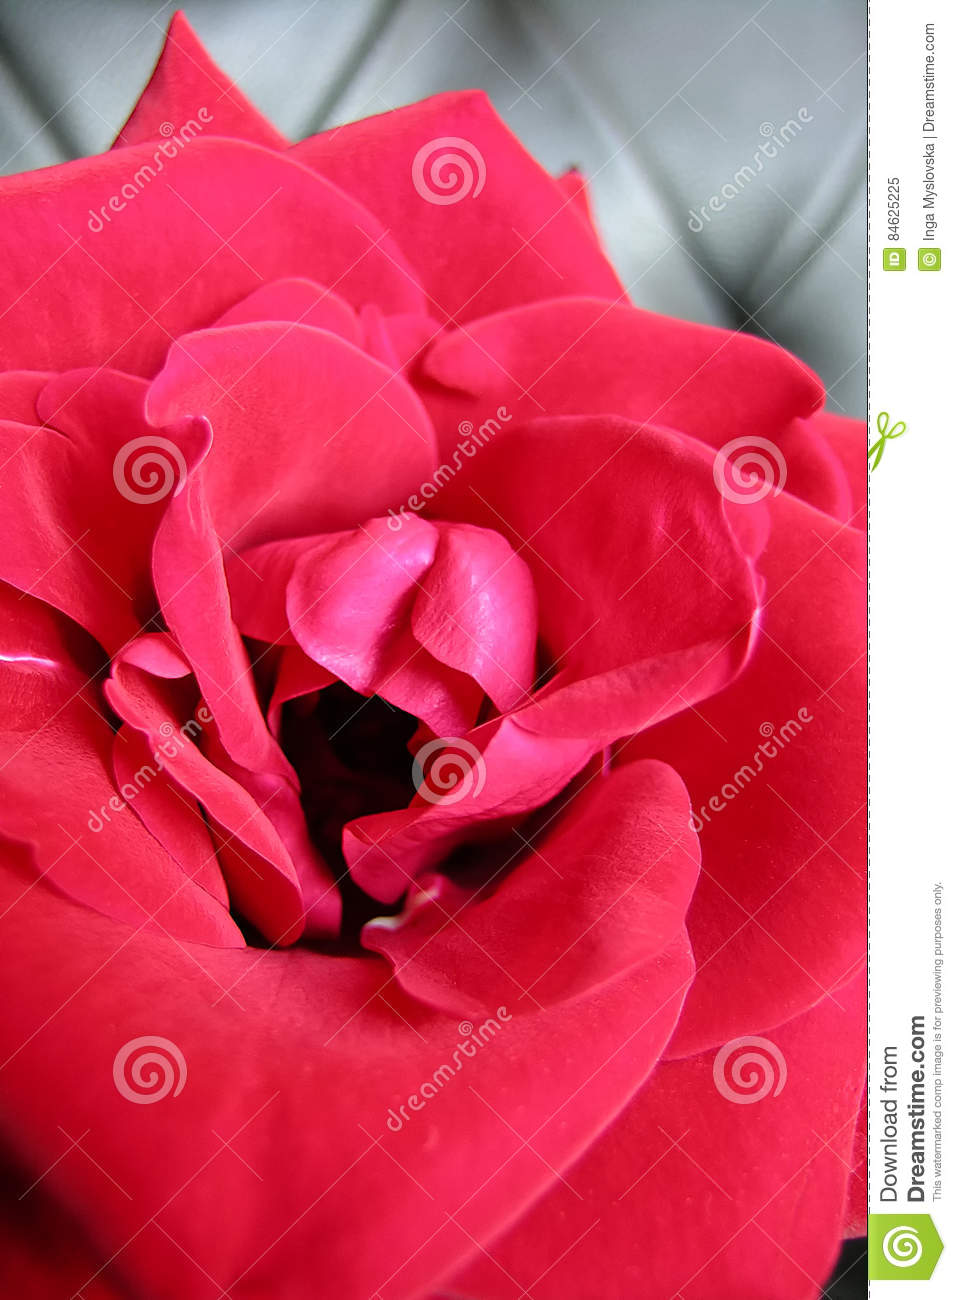 A flower and woman vagina